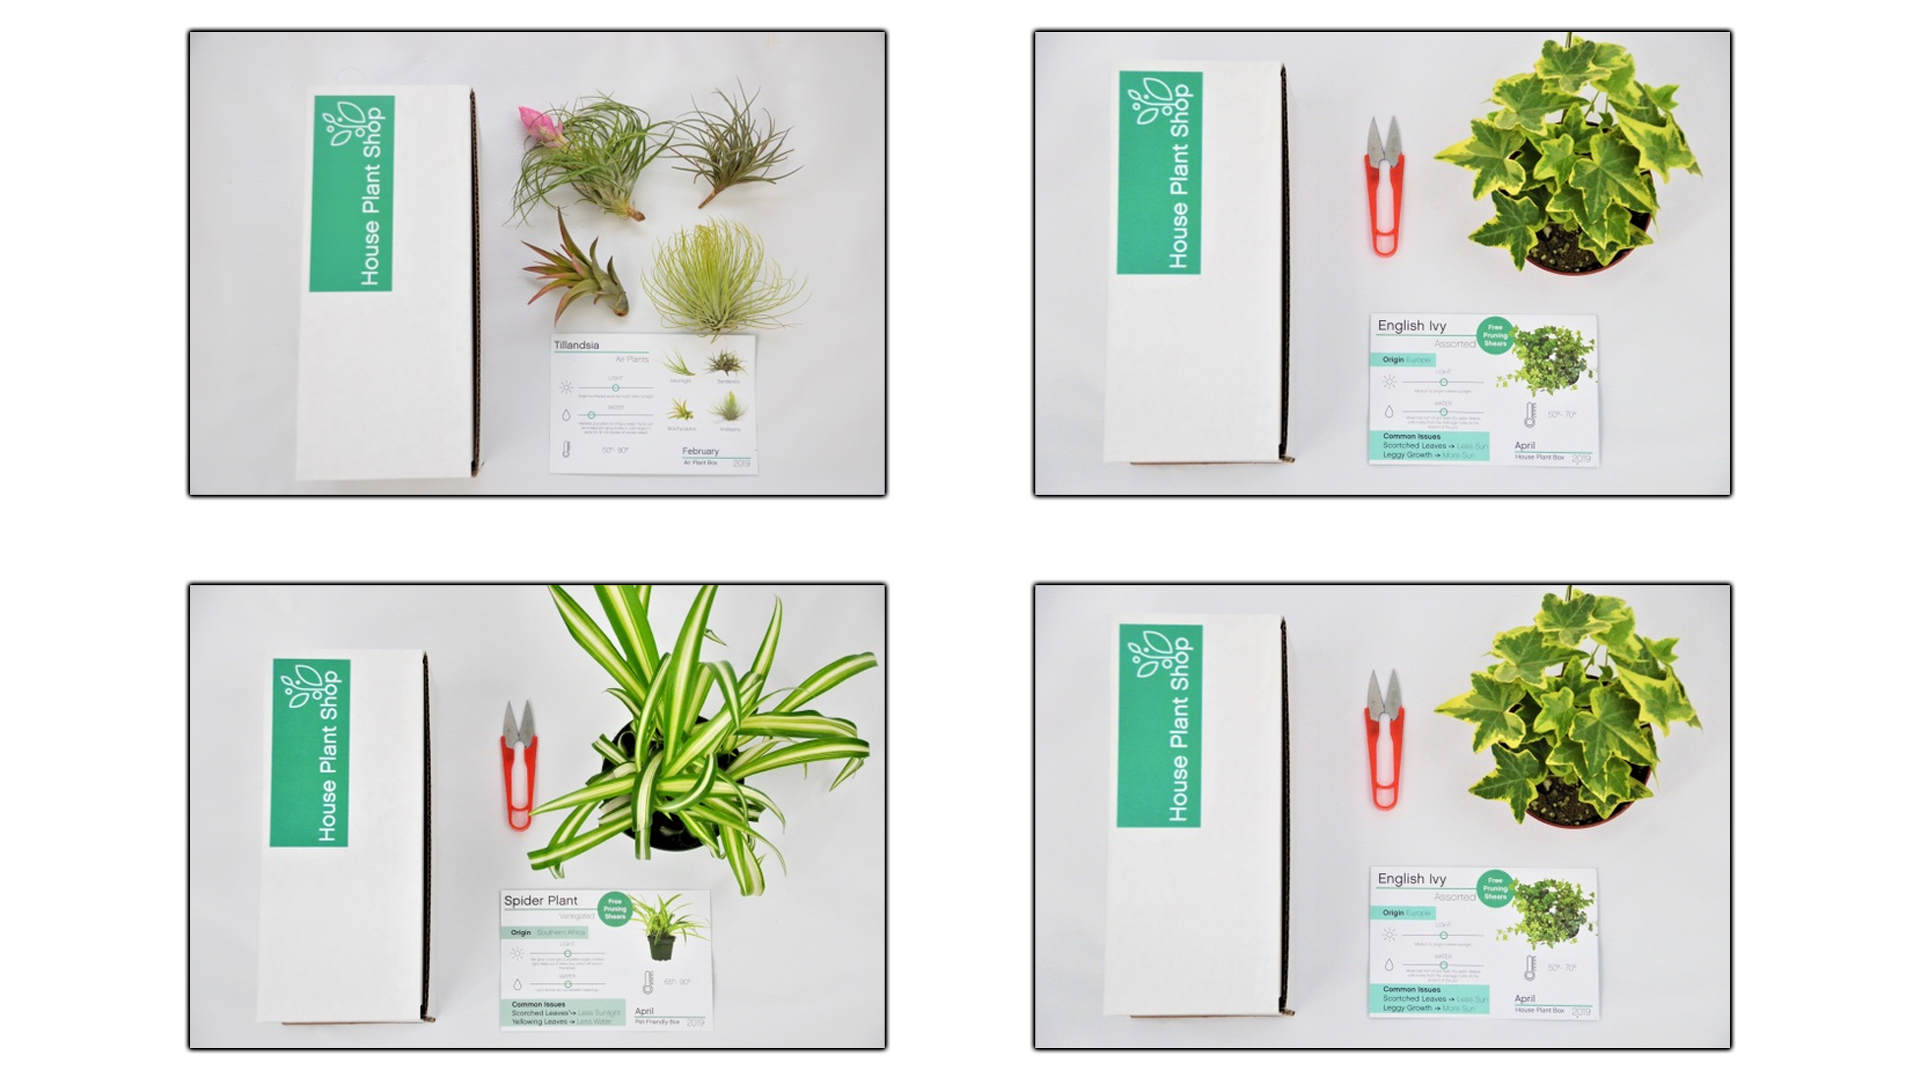 Photos of the Cratejoy Plant Box with various house plants